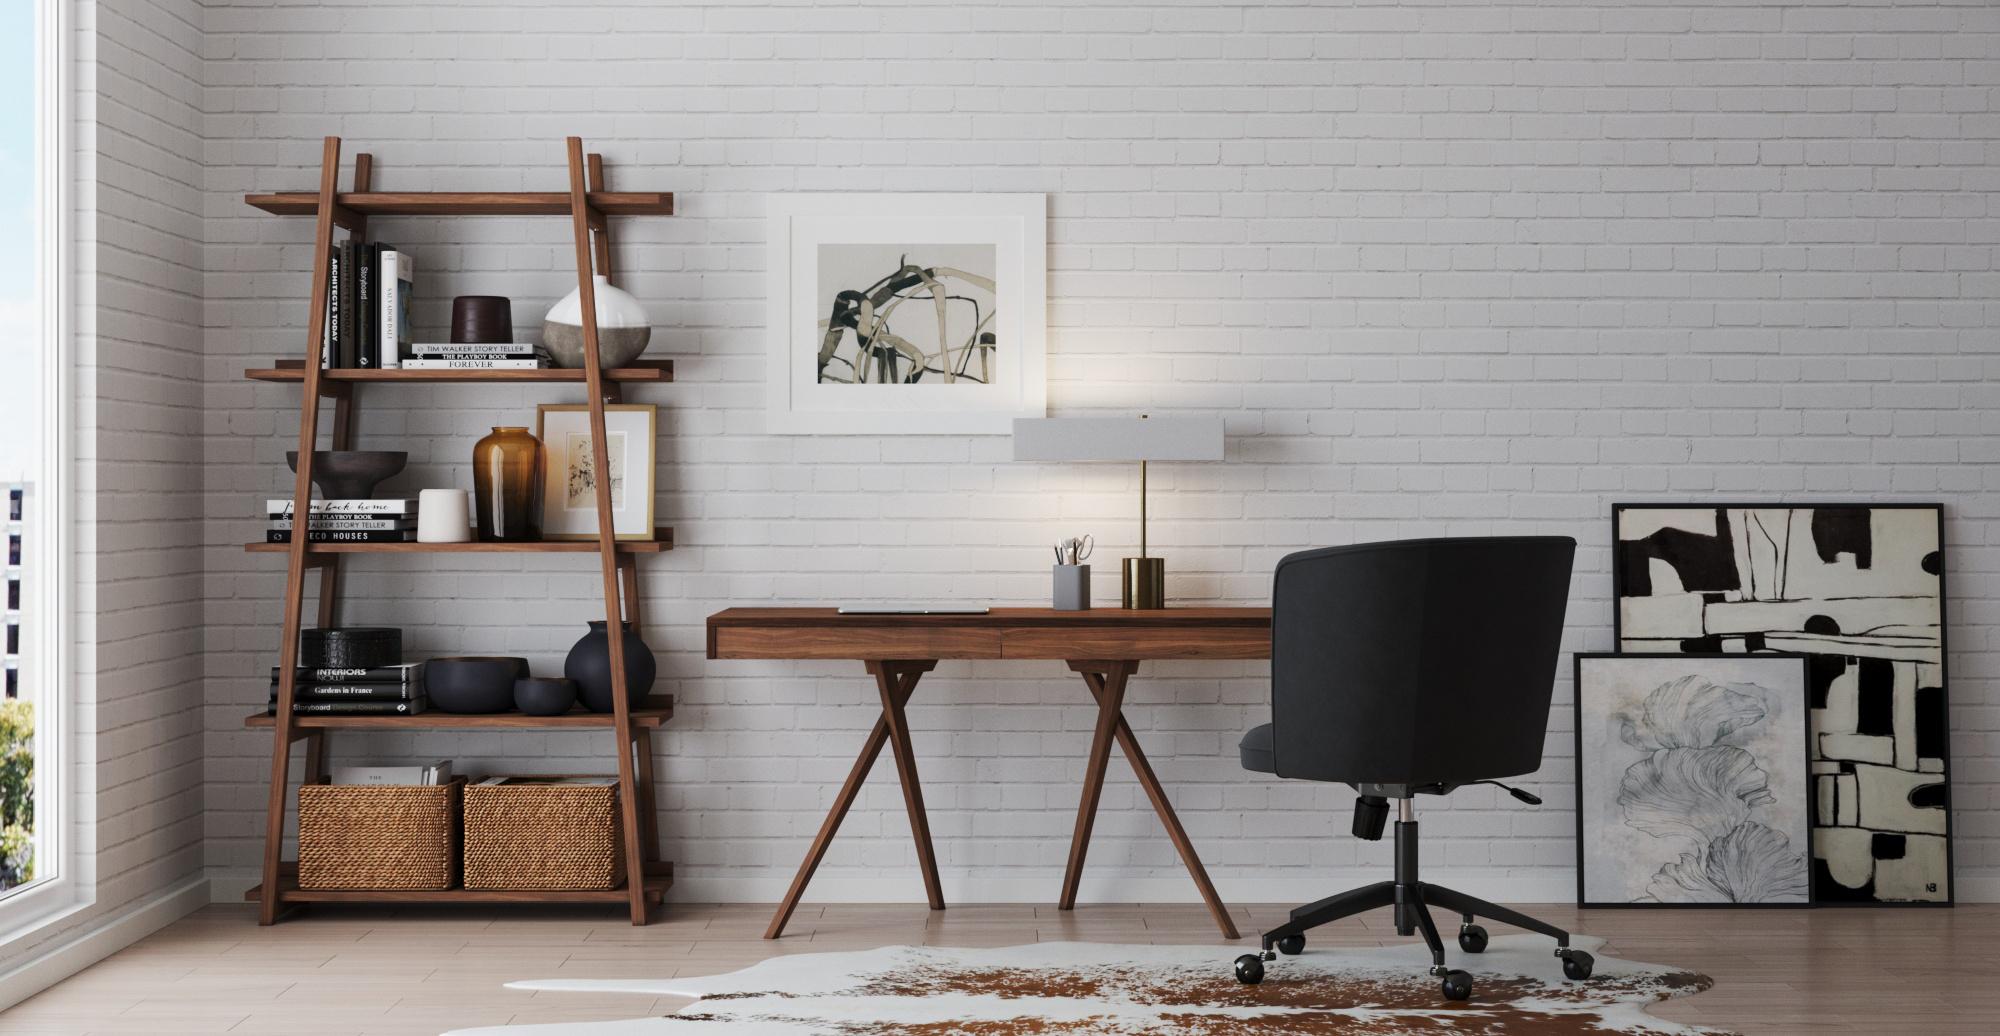 Lewes Shelf styled in Modern Contemporary home office